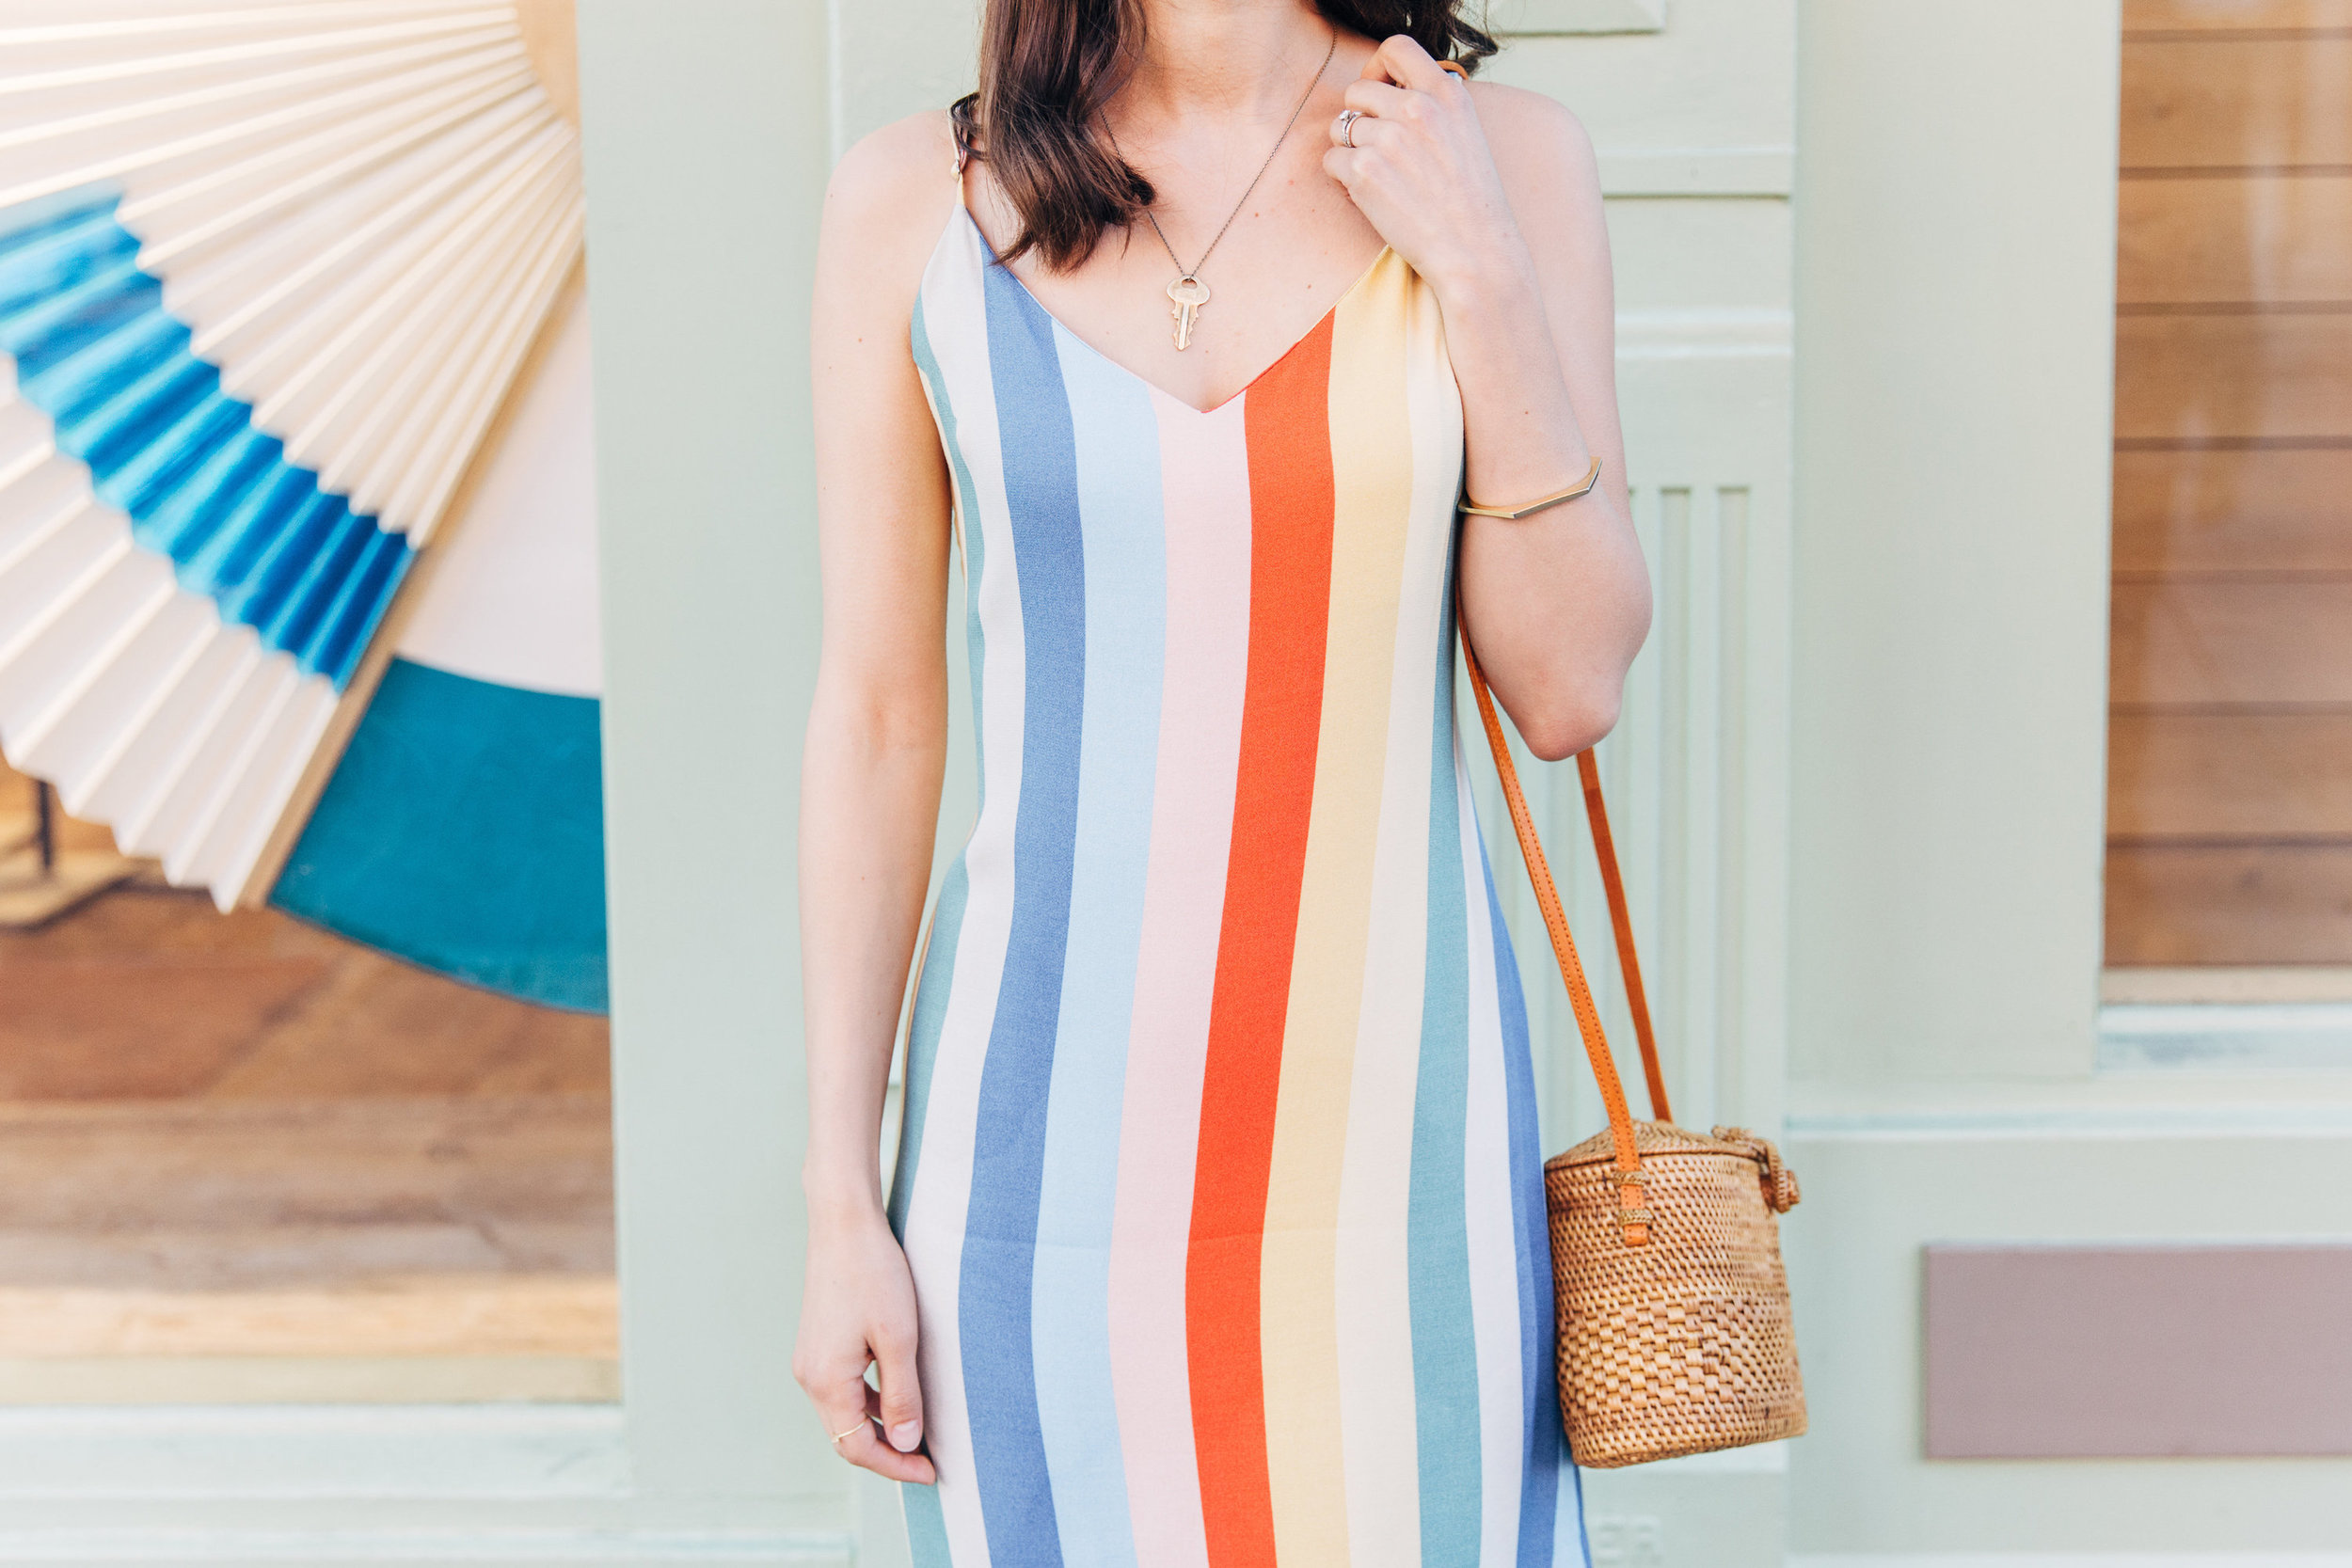 The Giving Keys necklace with a Sunday dress // A Week Of Bright & Bold Ethical Outfits With Michelle Chavez From Michelle For Good on The Good Trade